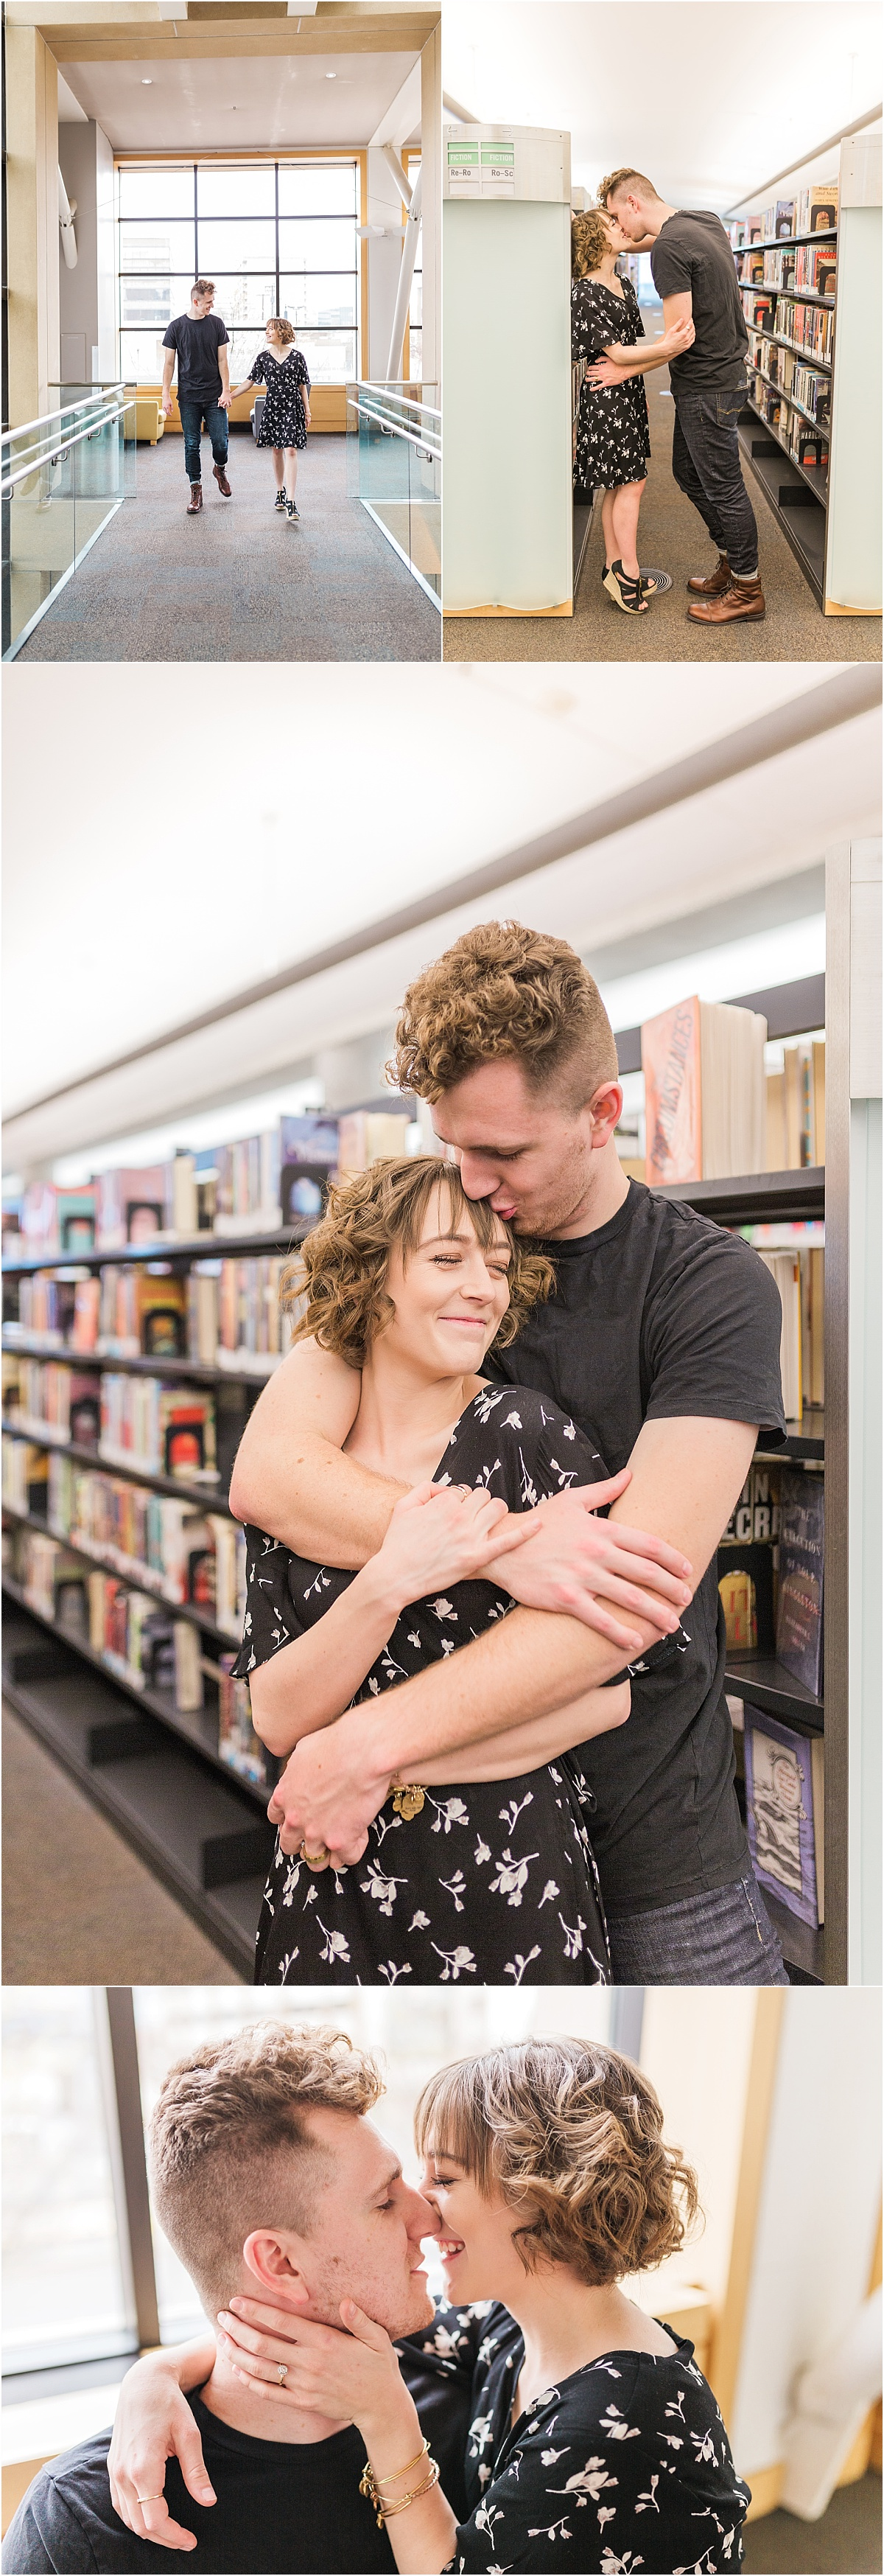 A couple is inside of a modern looking library. The couple is hugging, kissing, and smiling amonst the bookshelves.